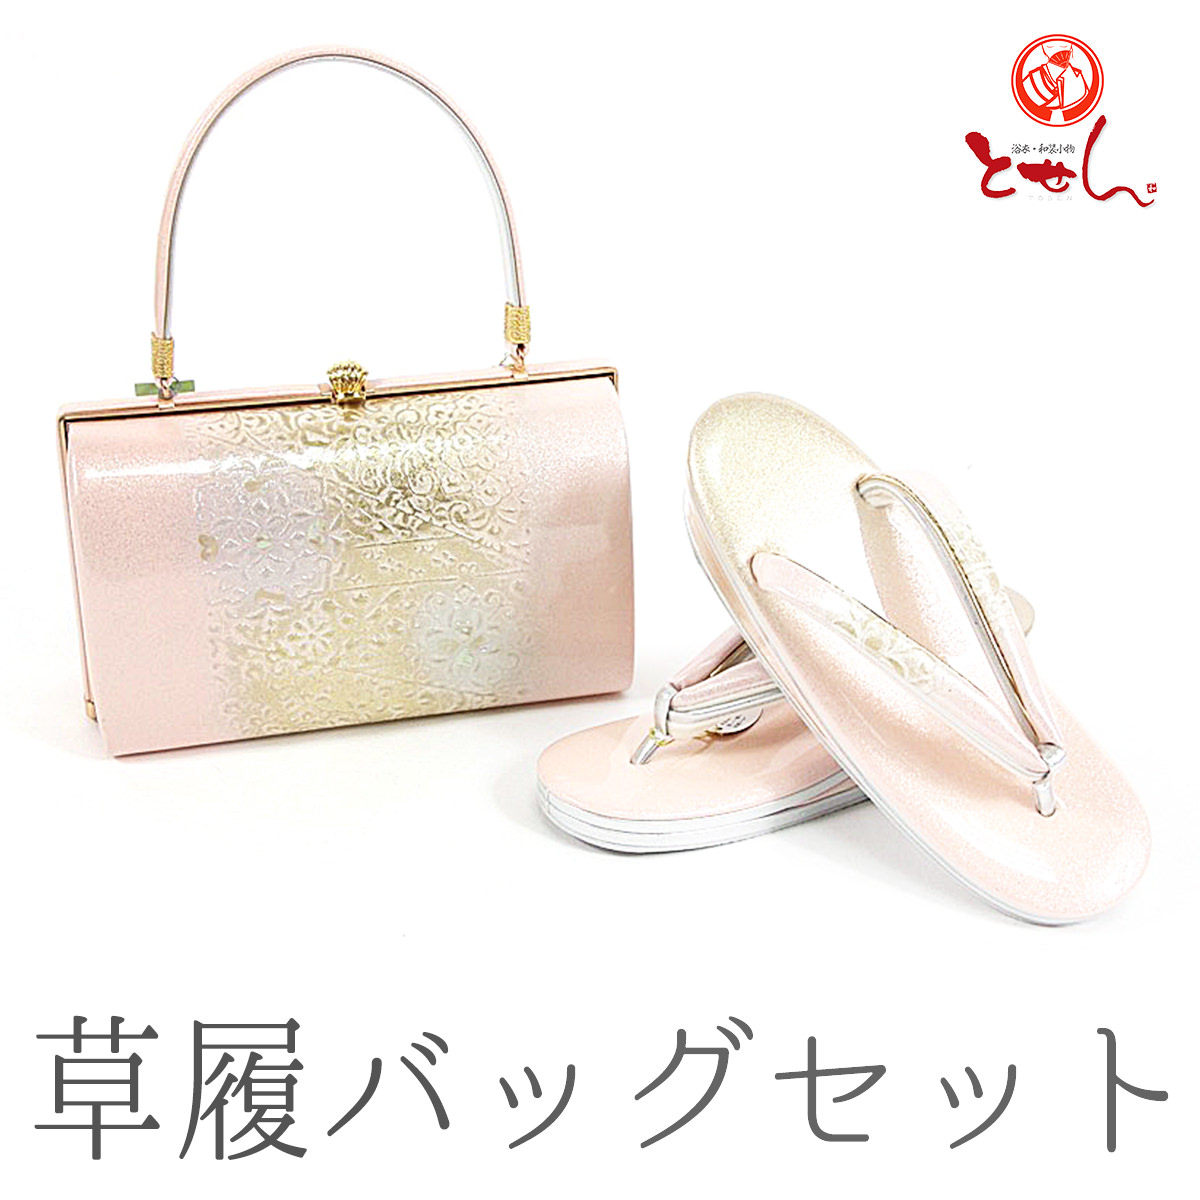 ed9029e221c30 Kimono shop sandals bag set pink X gold sandals 23.5cm kimono fashion set  set coming-of-age ceremony New Year holidays full dress wedding ceremony ...